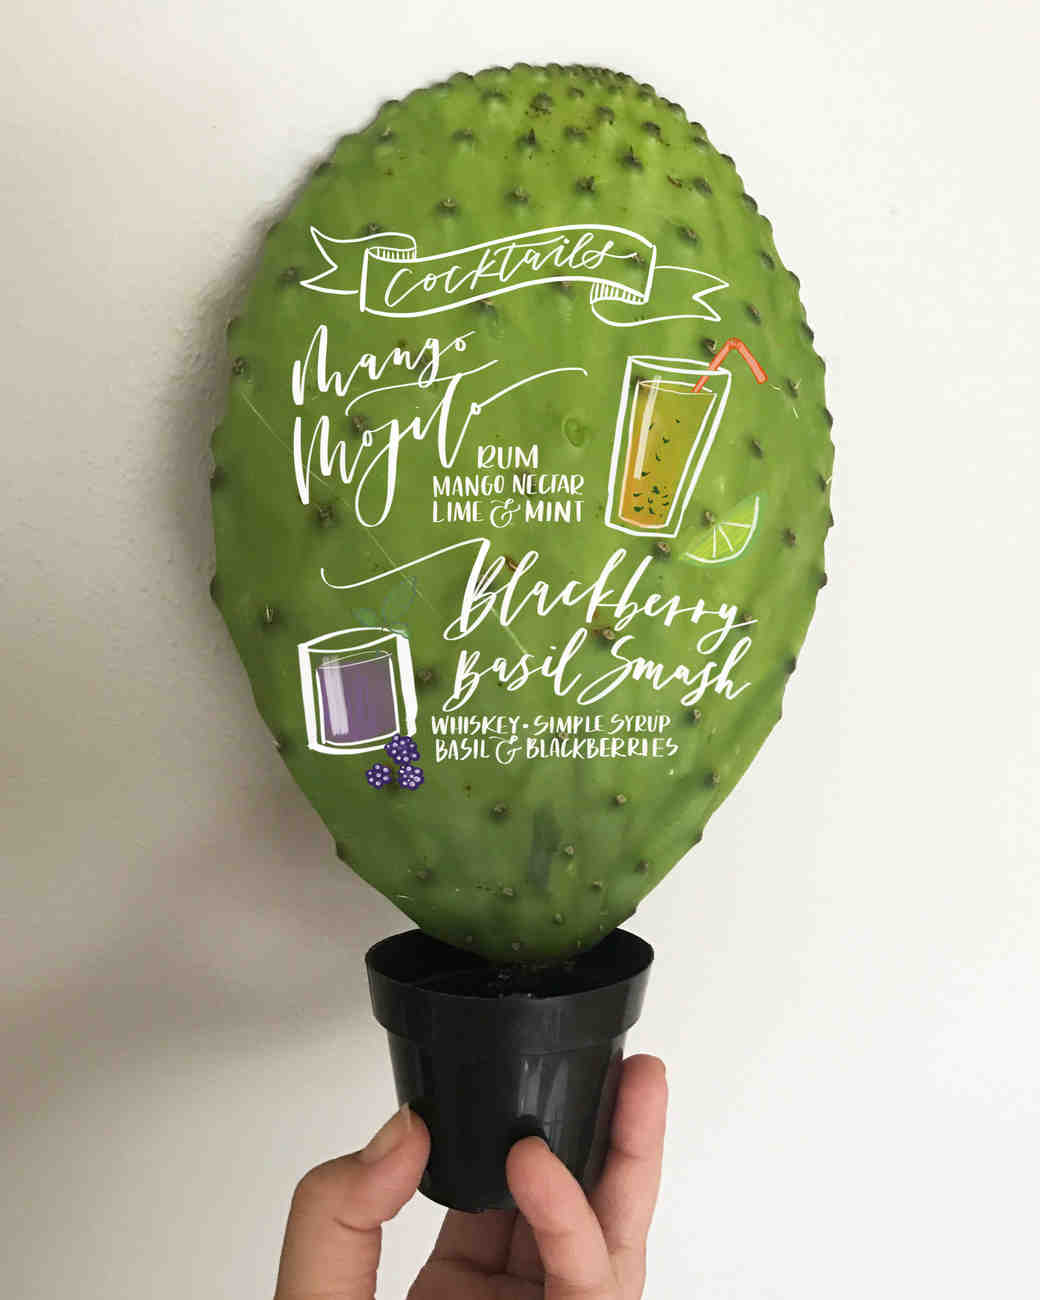 Cactus Cocktail Menu